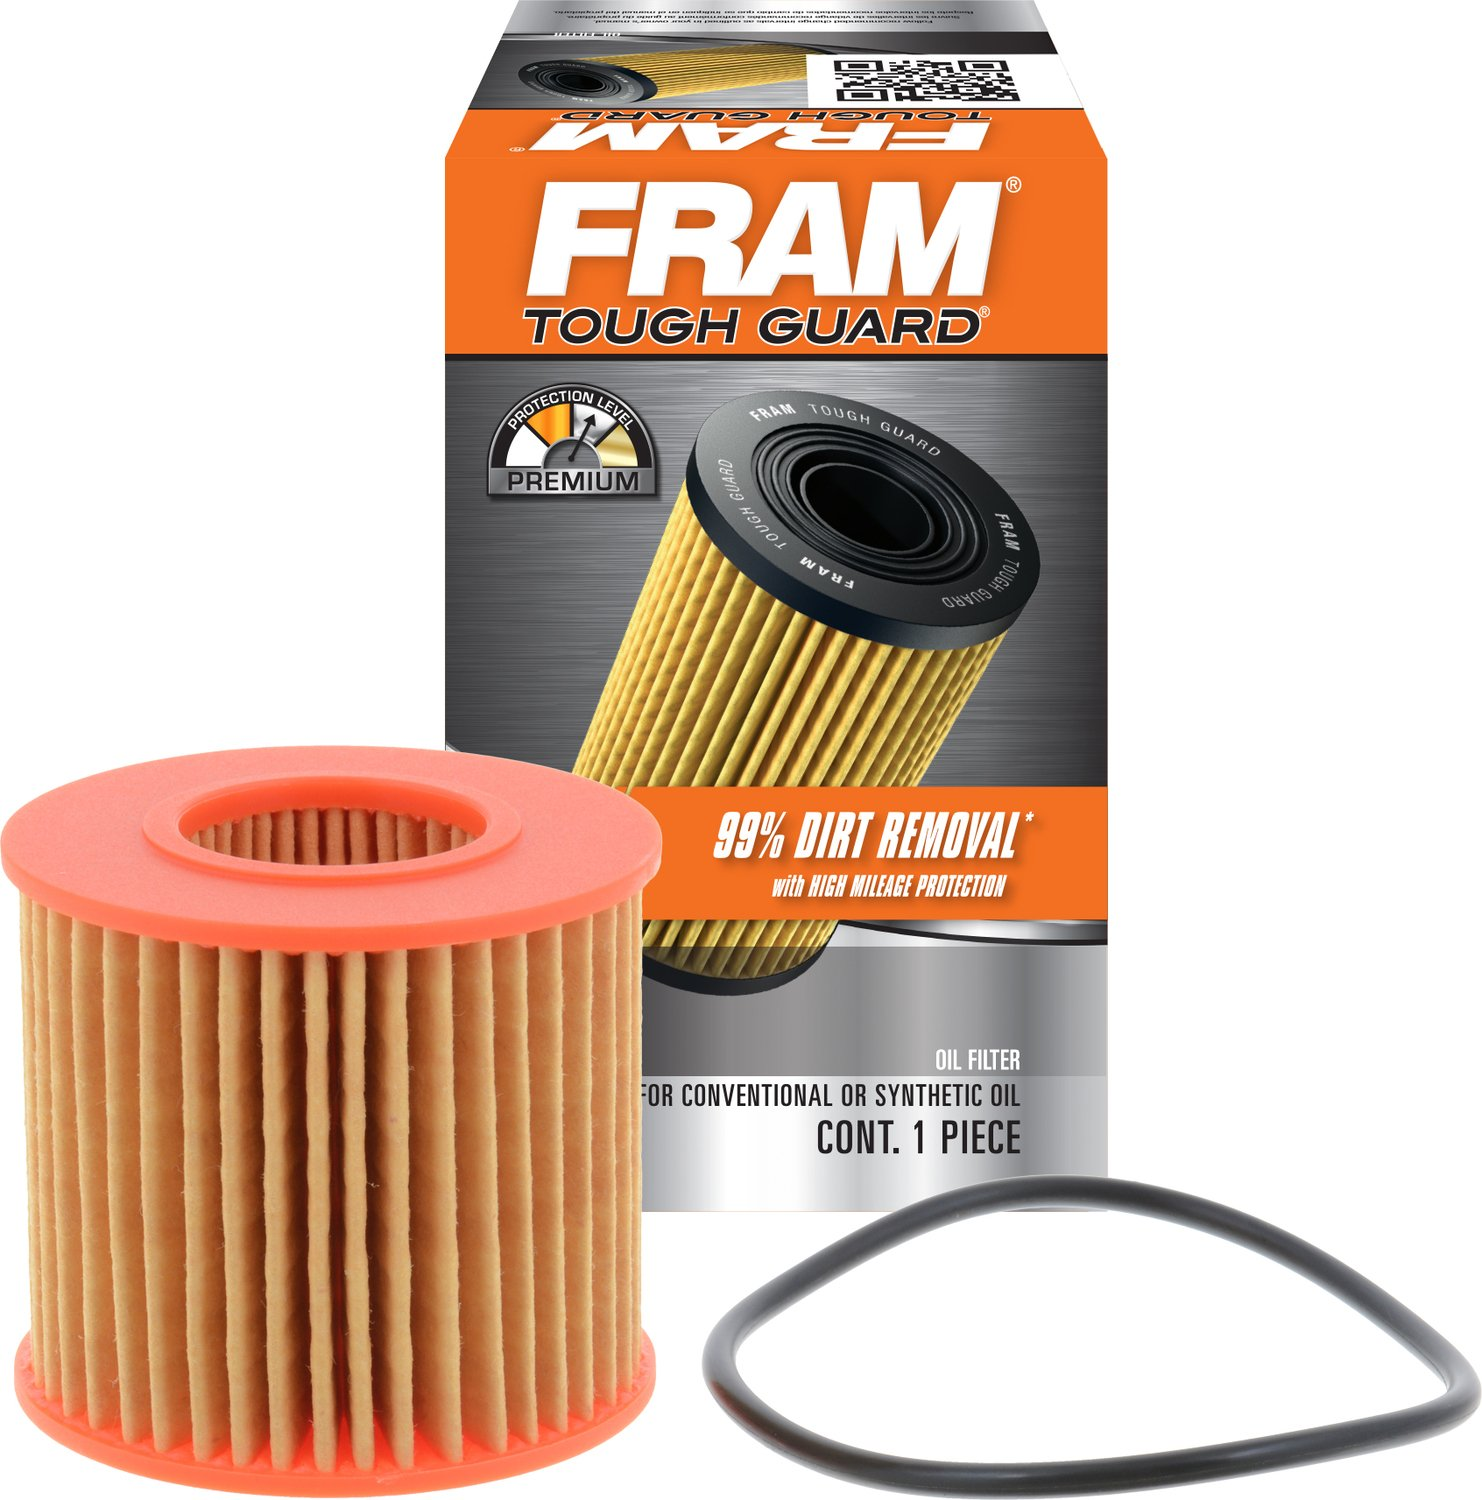 FRAM TG10358 Tough Guard Full-Flow Cartridge Oil Filter product image